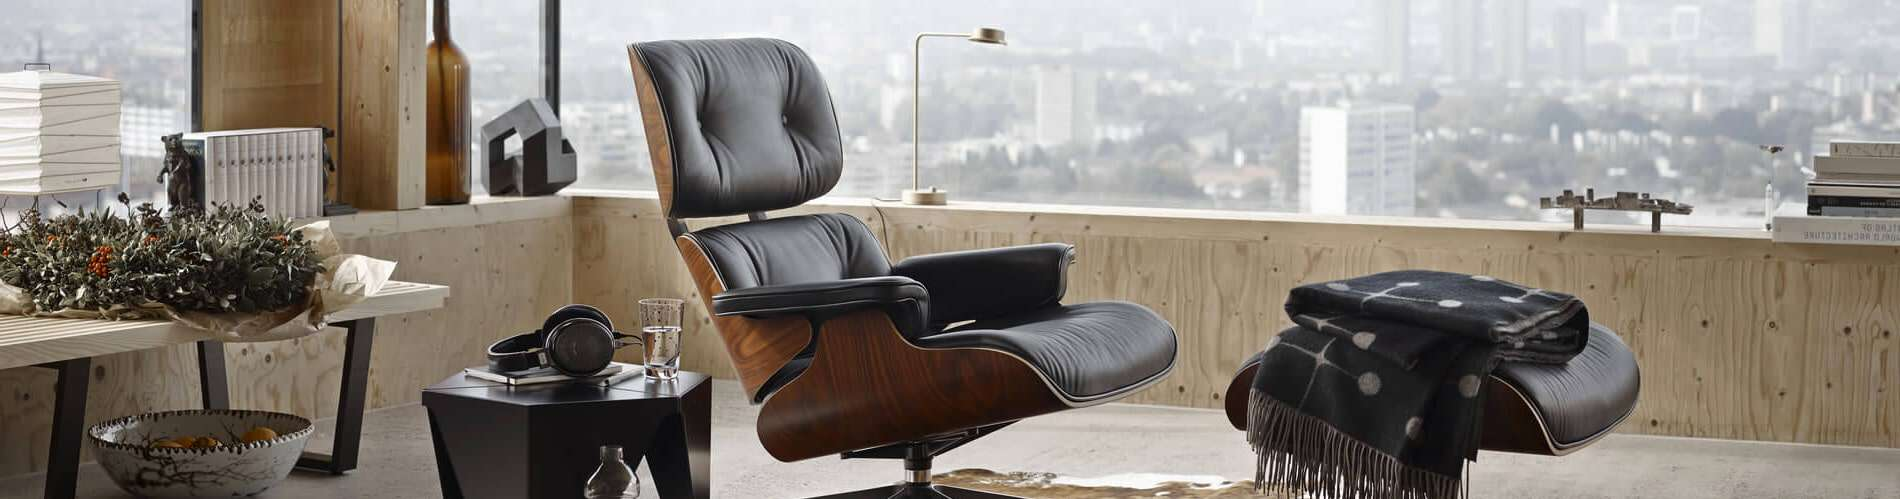 Eames Lounge Stoel Replica.Buy Eames Lounge Chair Premium Reproduction At Bybespoek